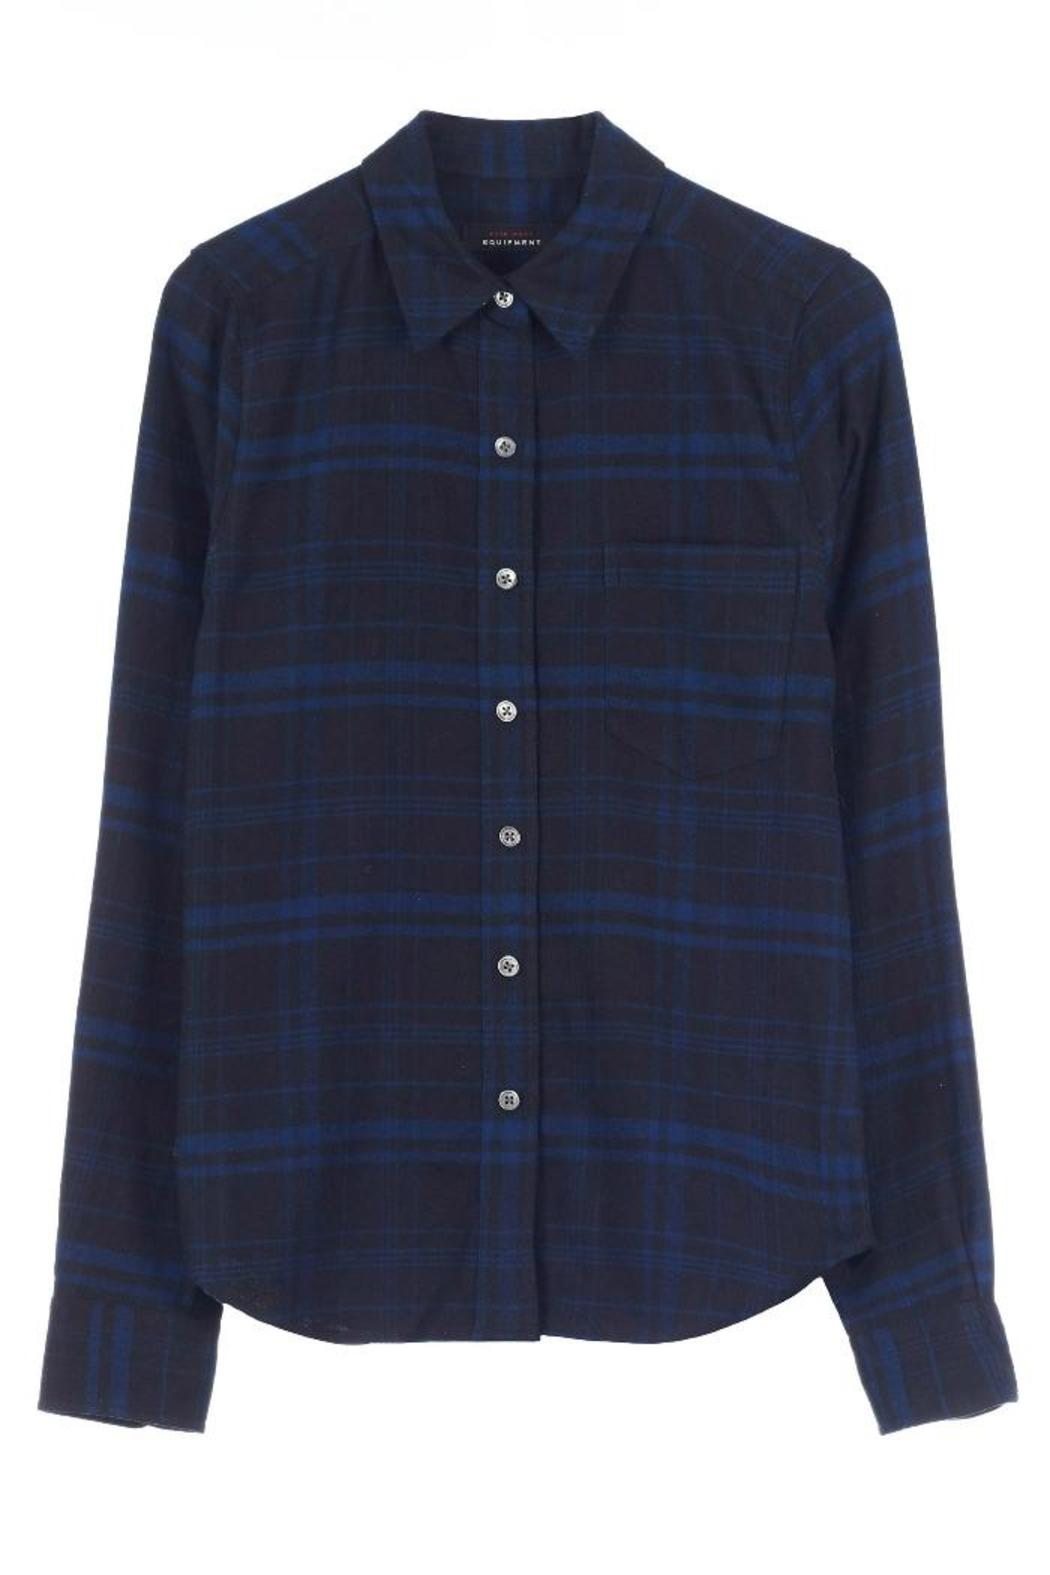 Equipment London Flannel Shirt - Back Cropped Image